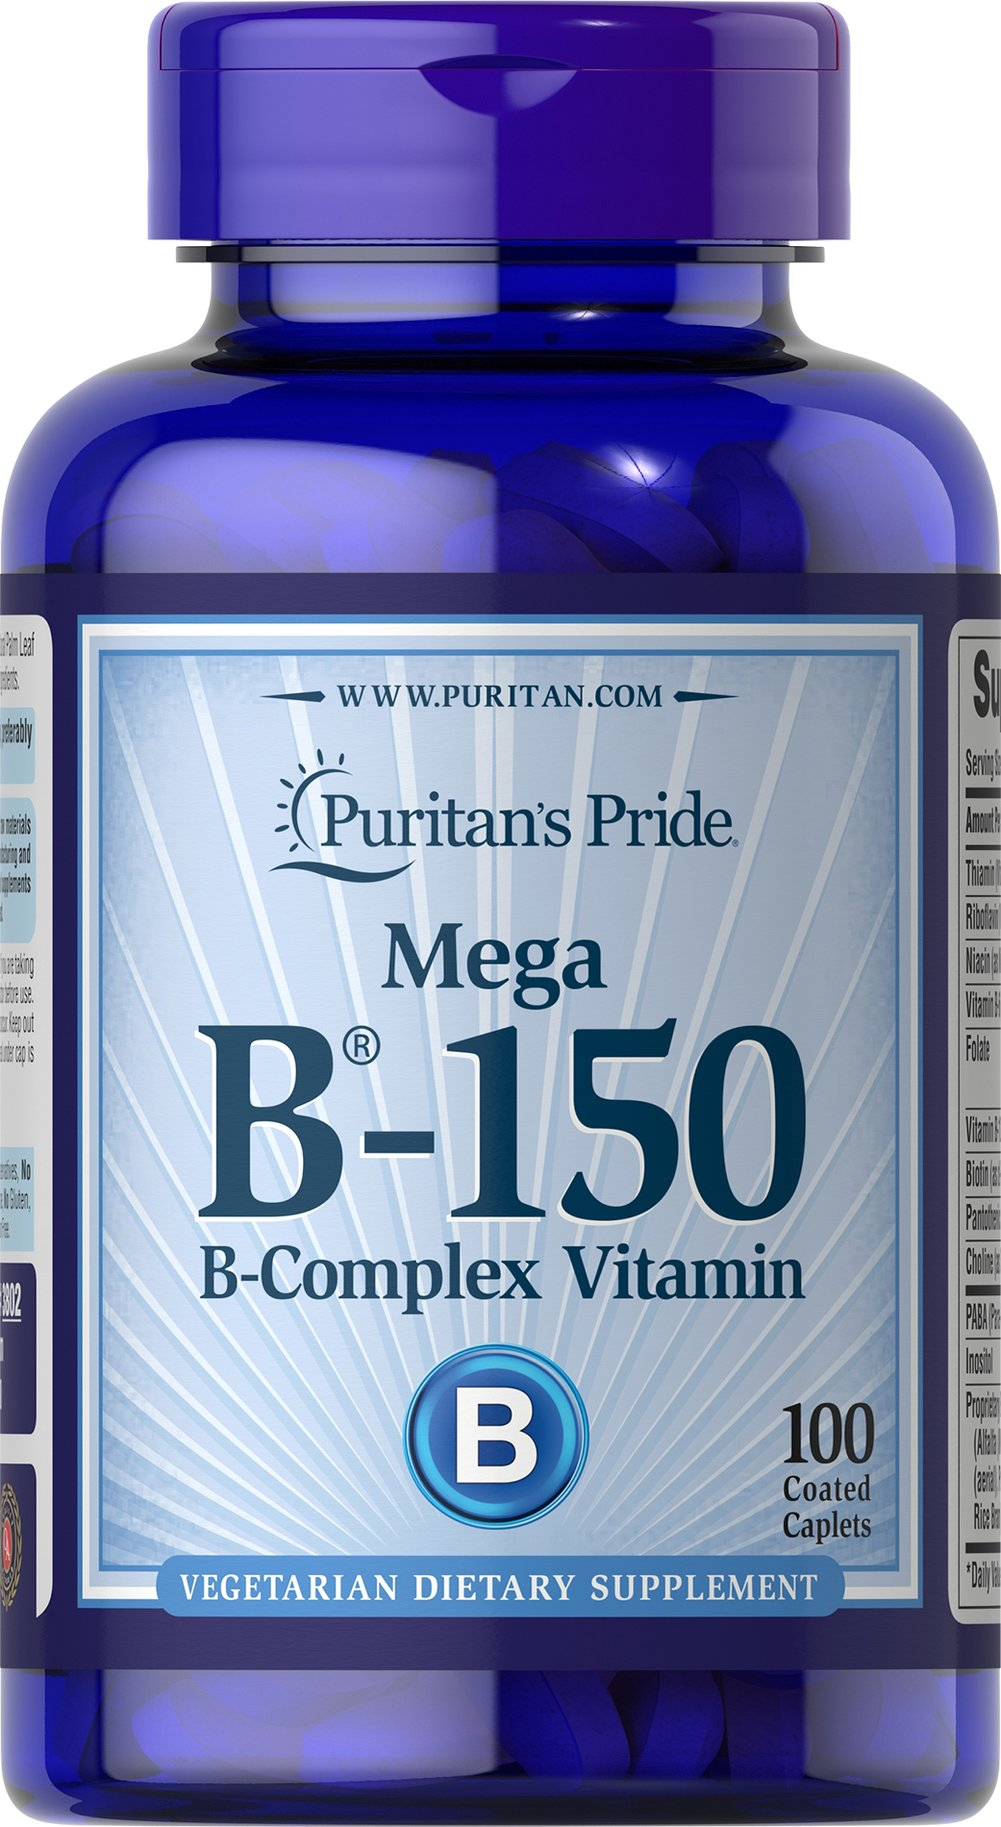 Vitamin B-150™ Complex <p>B your best with our high-quality B-150™ Complex. The B Vitamins are made up of several essential nutrients that provide nourishment for the stress of daily living.** Each nutrient in the B Vitamin Complex performs a unique role in maintaining proper metabolic functioning and is essential for well being.**</p> <p>This product delivers B-1, B-2, B-6, B-12, Biotin, Folic Acid, Niacin, Inositol, PABA, Pantothenic Acid and Choline Bitartrate.</p> 100